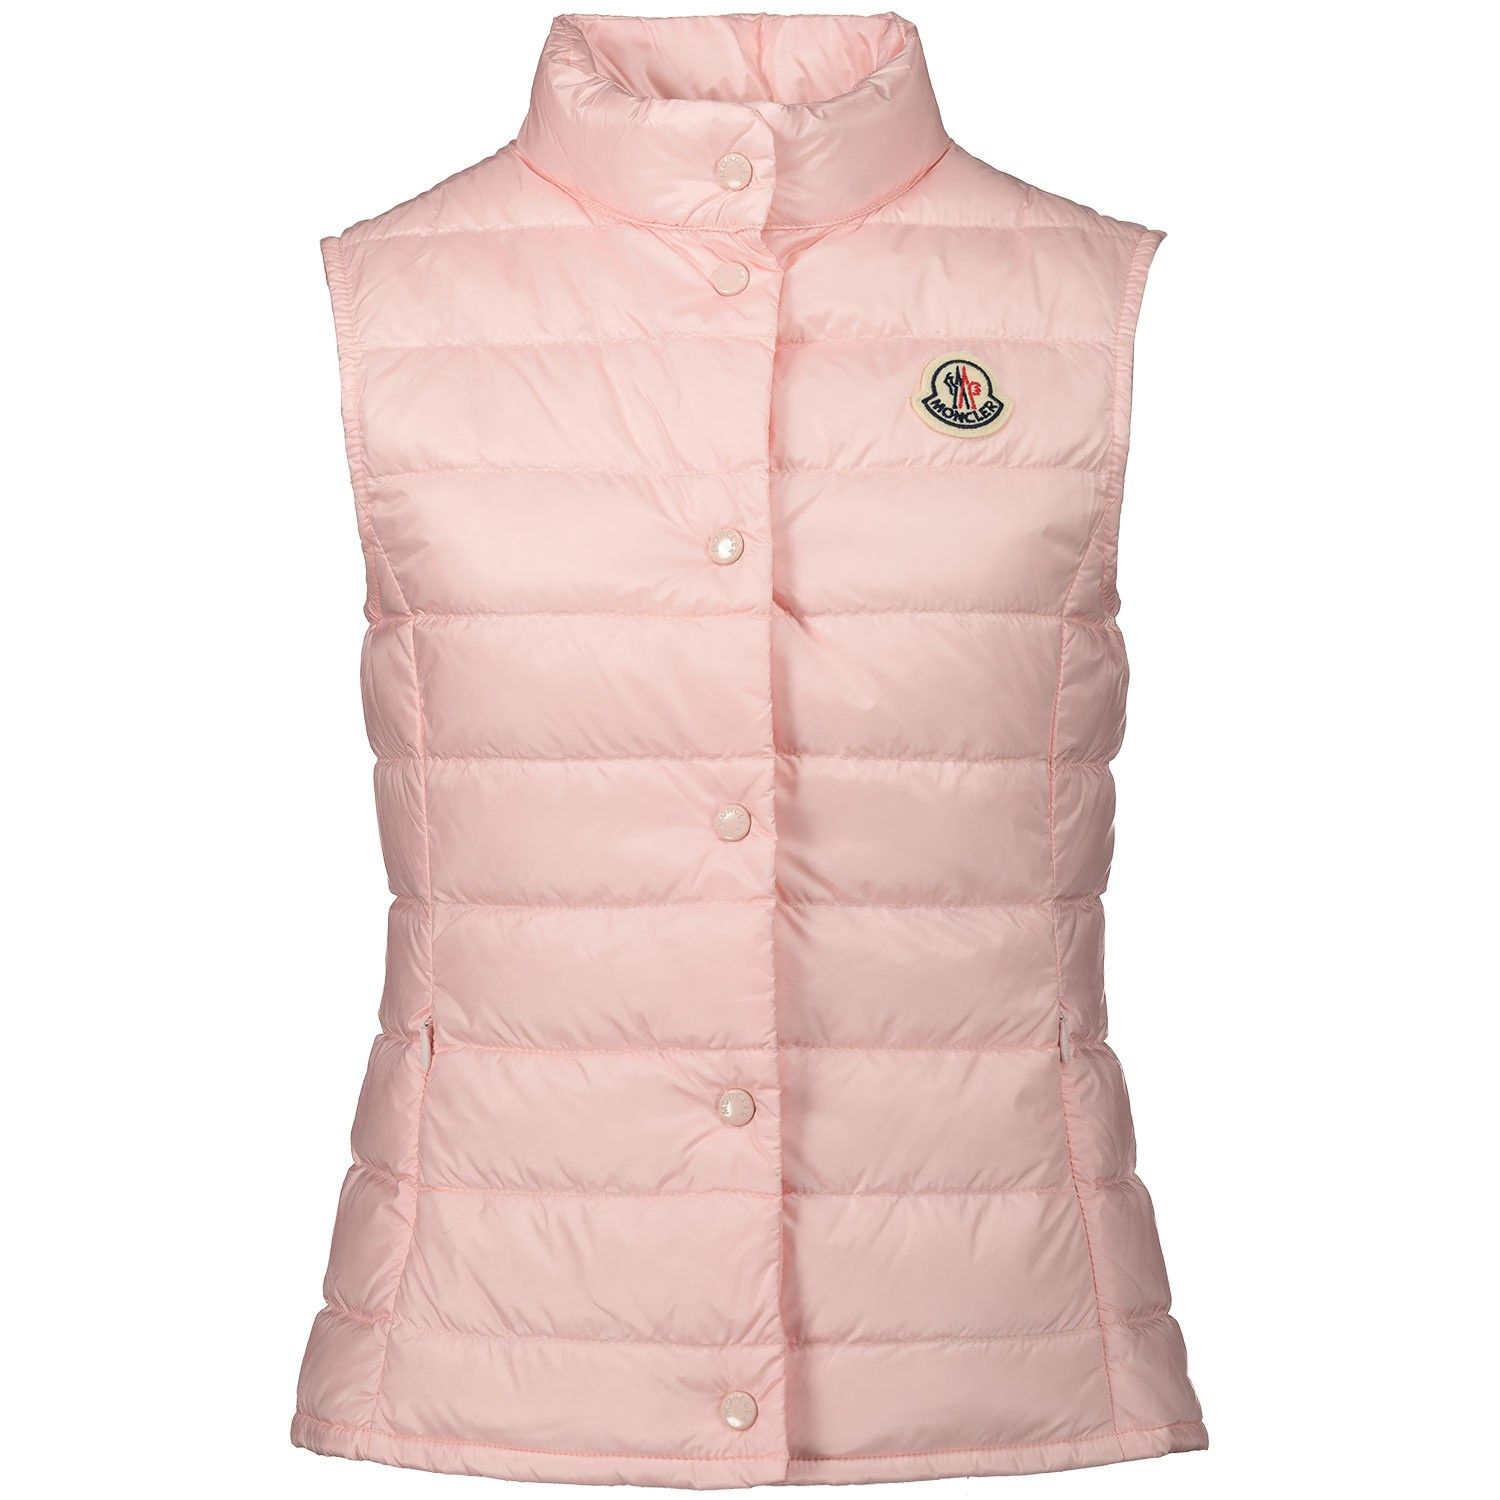 Picture of Moncler 1A11810 kids bodywarmer light pink